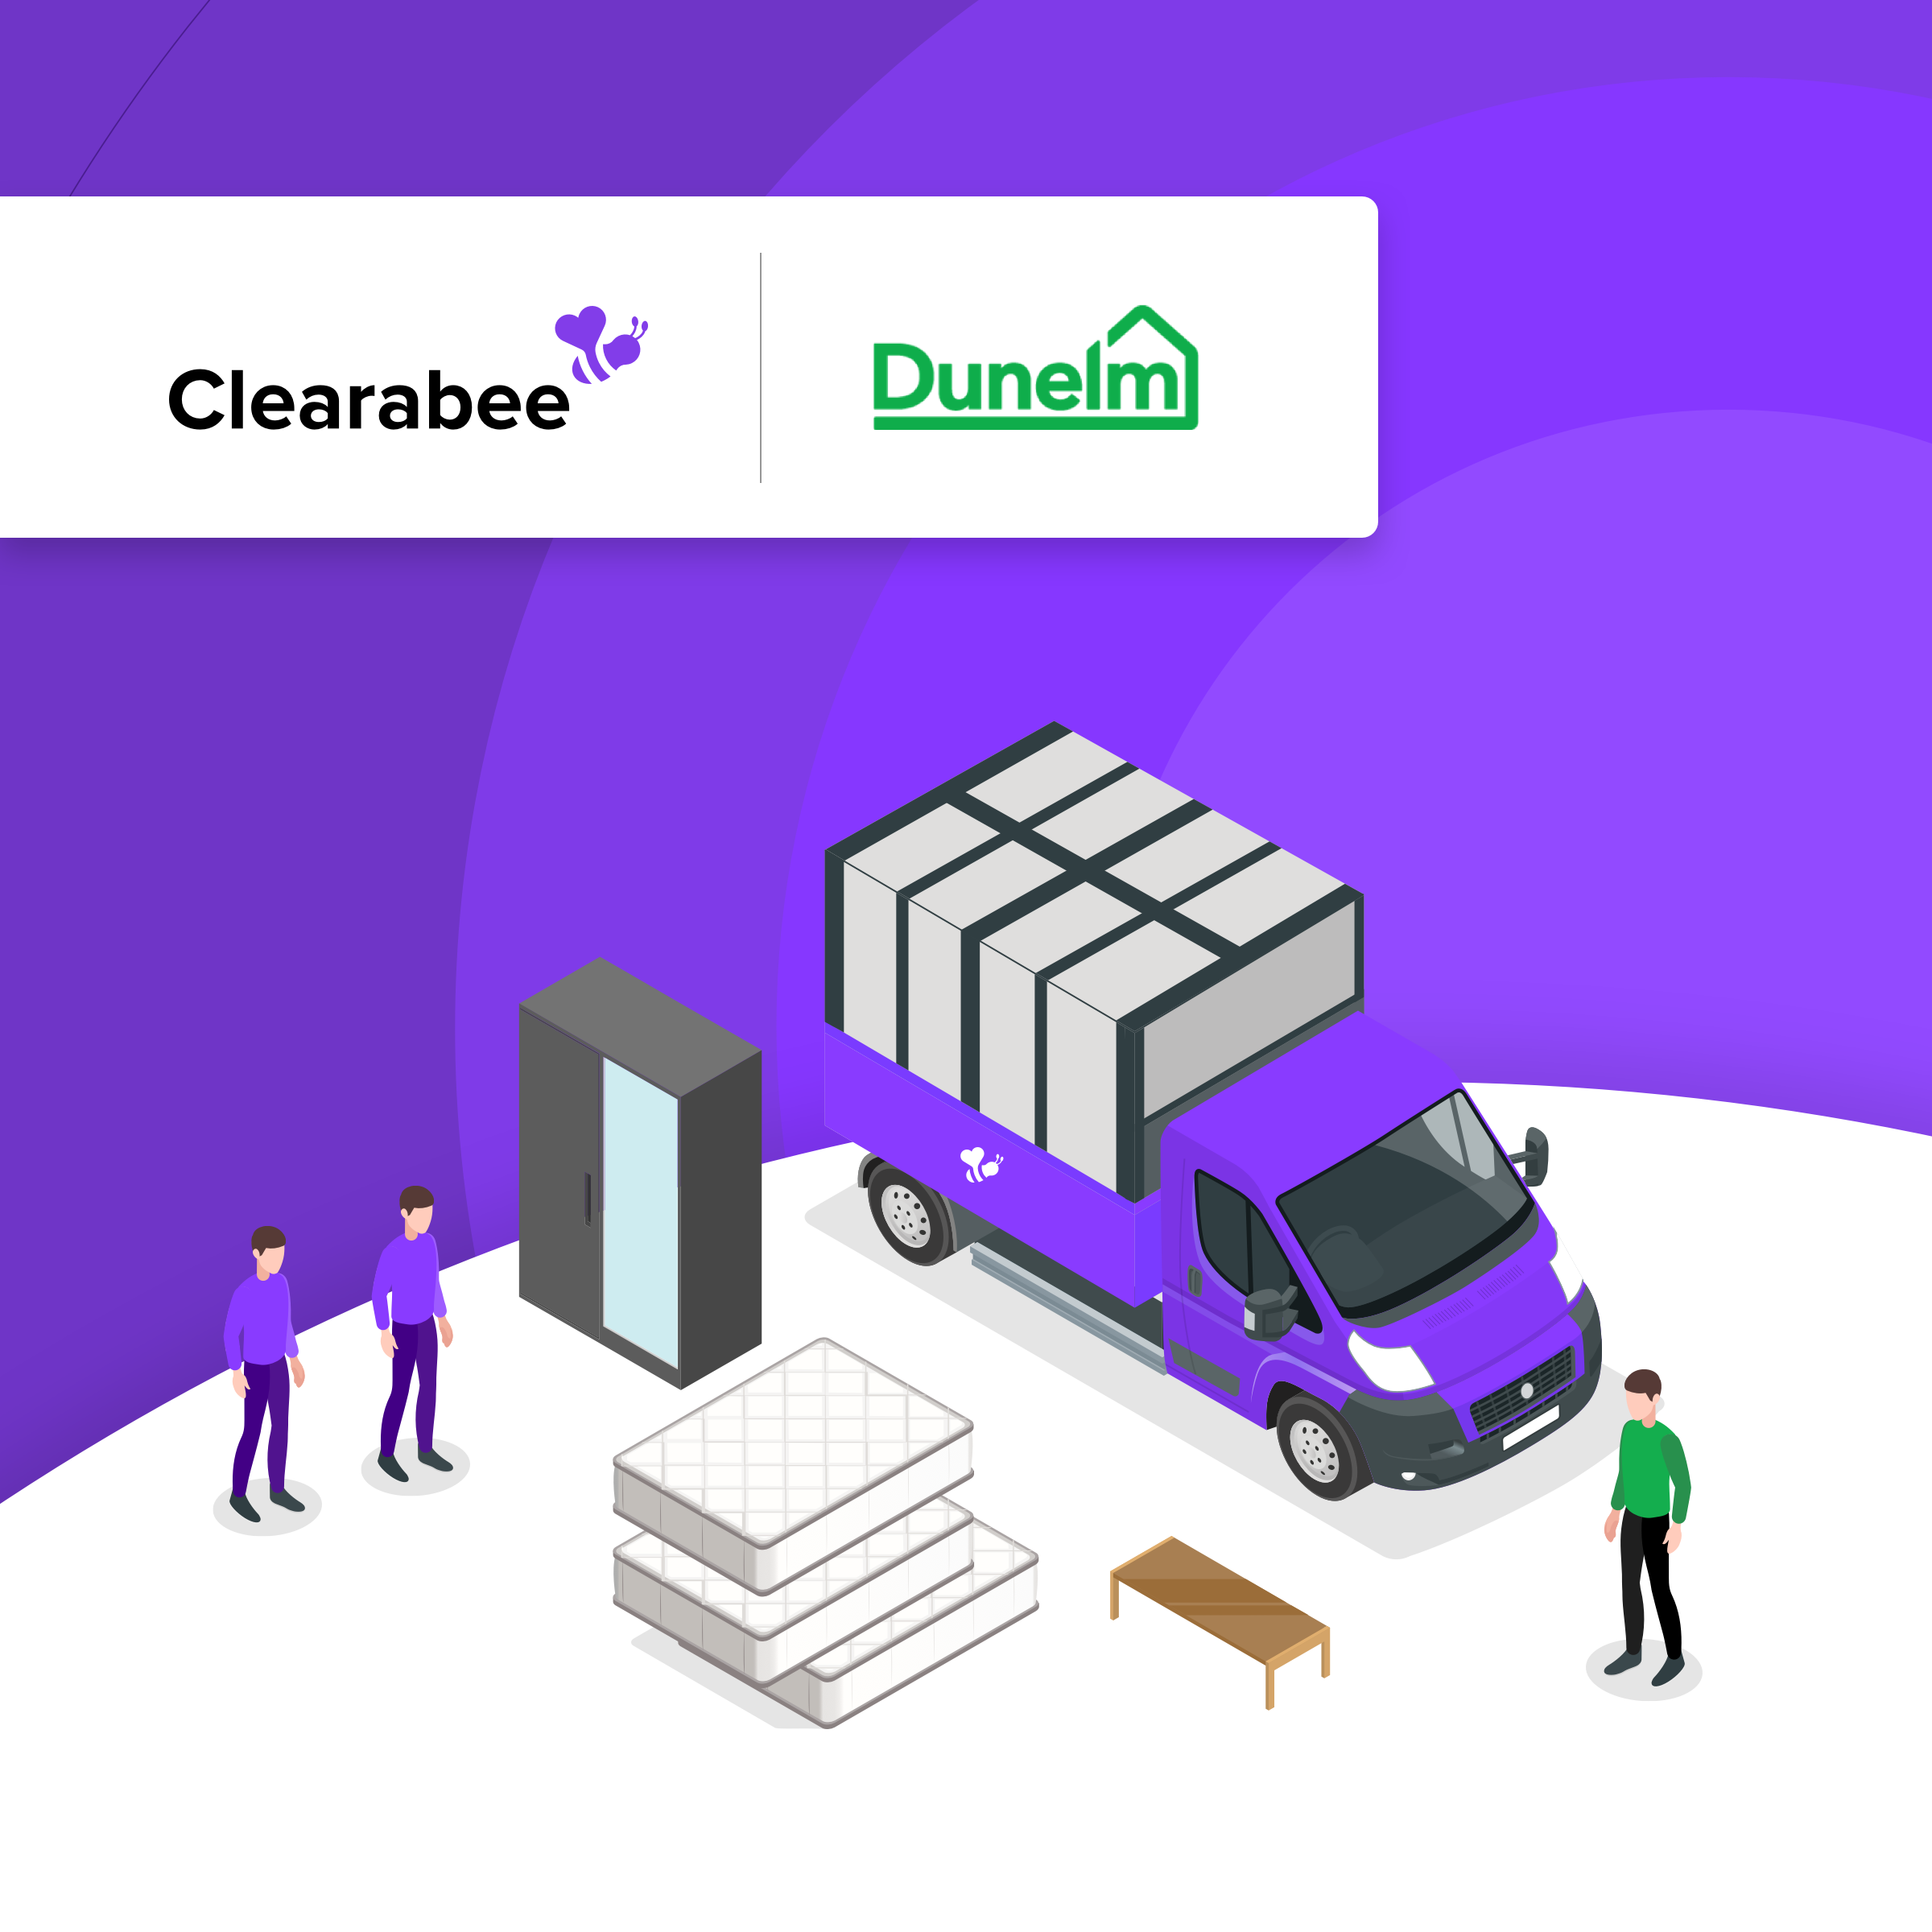 Clearabee announces new partnership with Dunelm